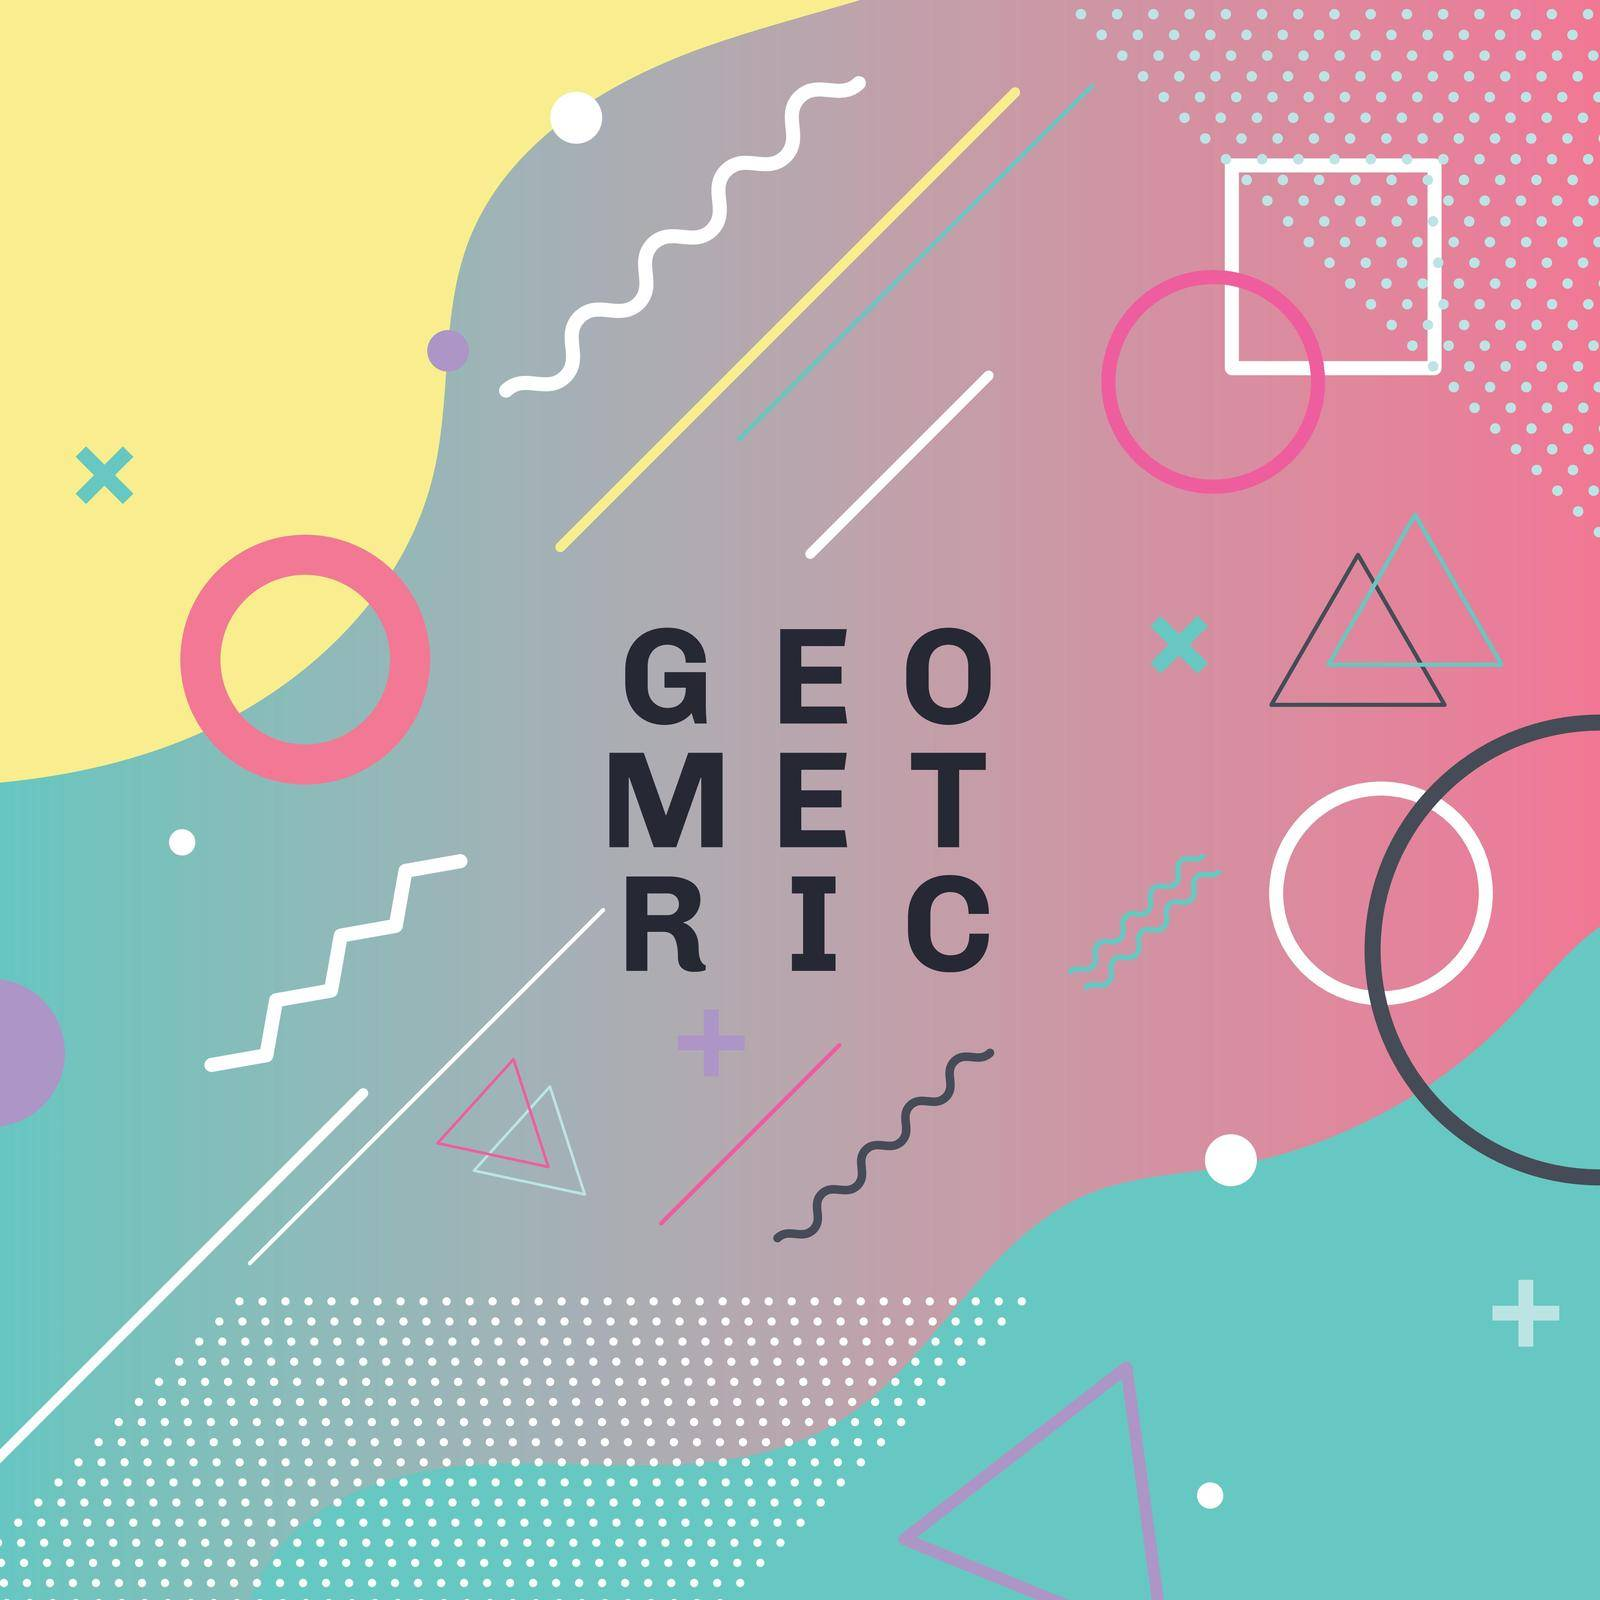 Abstract colorful geometric shapes and forms trendy fashion memphis style card design background. You can use for poster, brochure, layout, template or presentation. Vector illustration